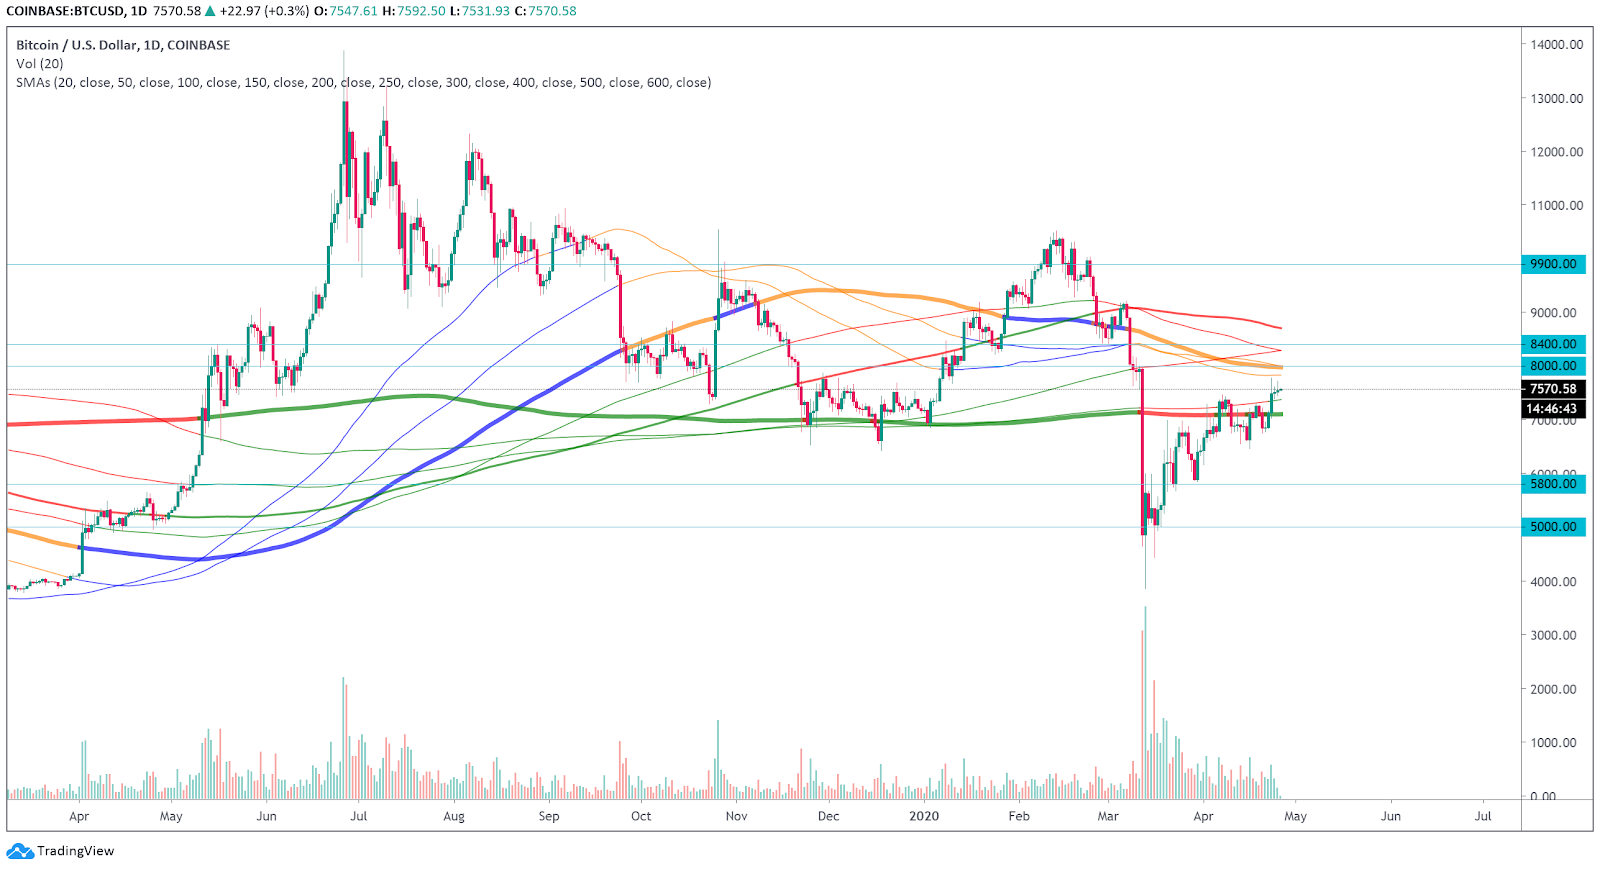 Bitcoin daily chart with SMA over it